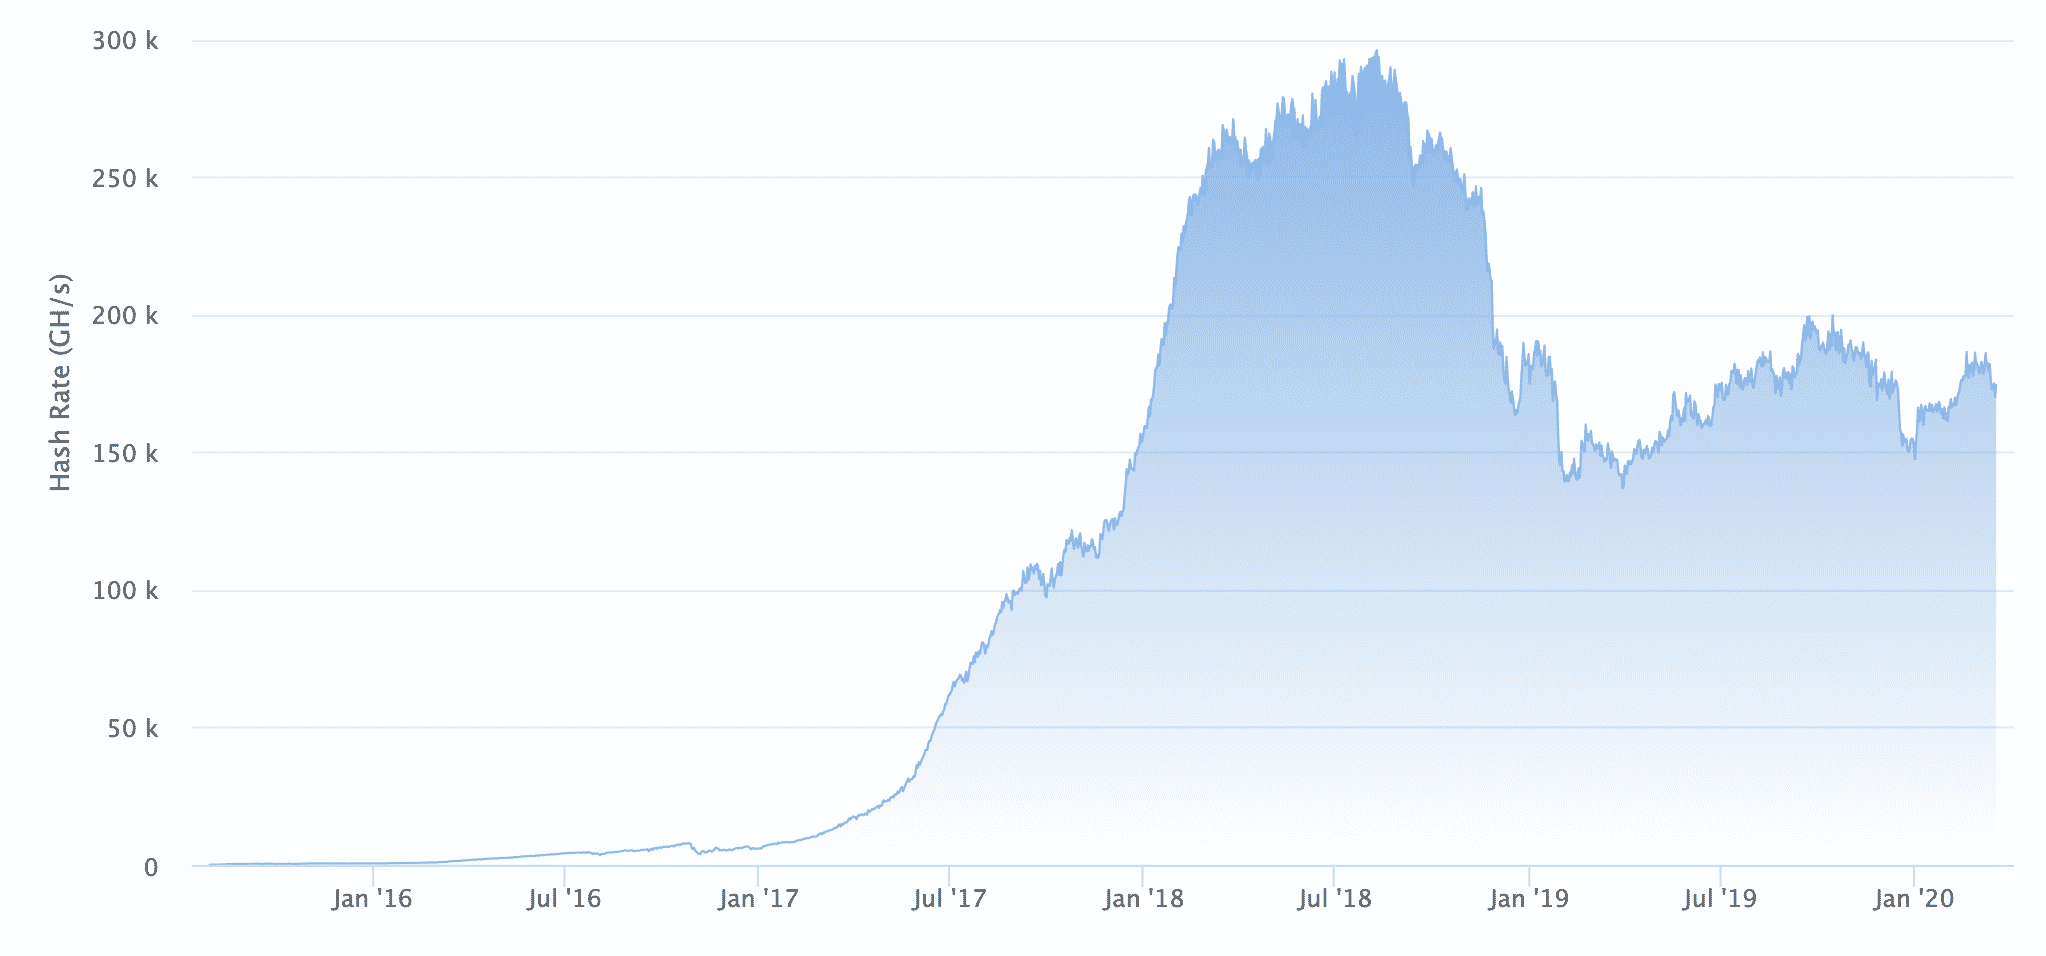 Eth's hash unmoved amid price crash, March 2020